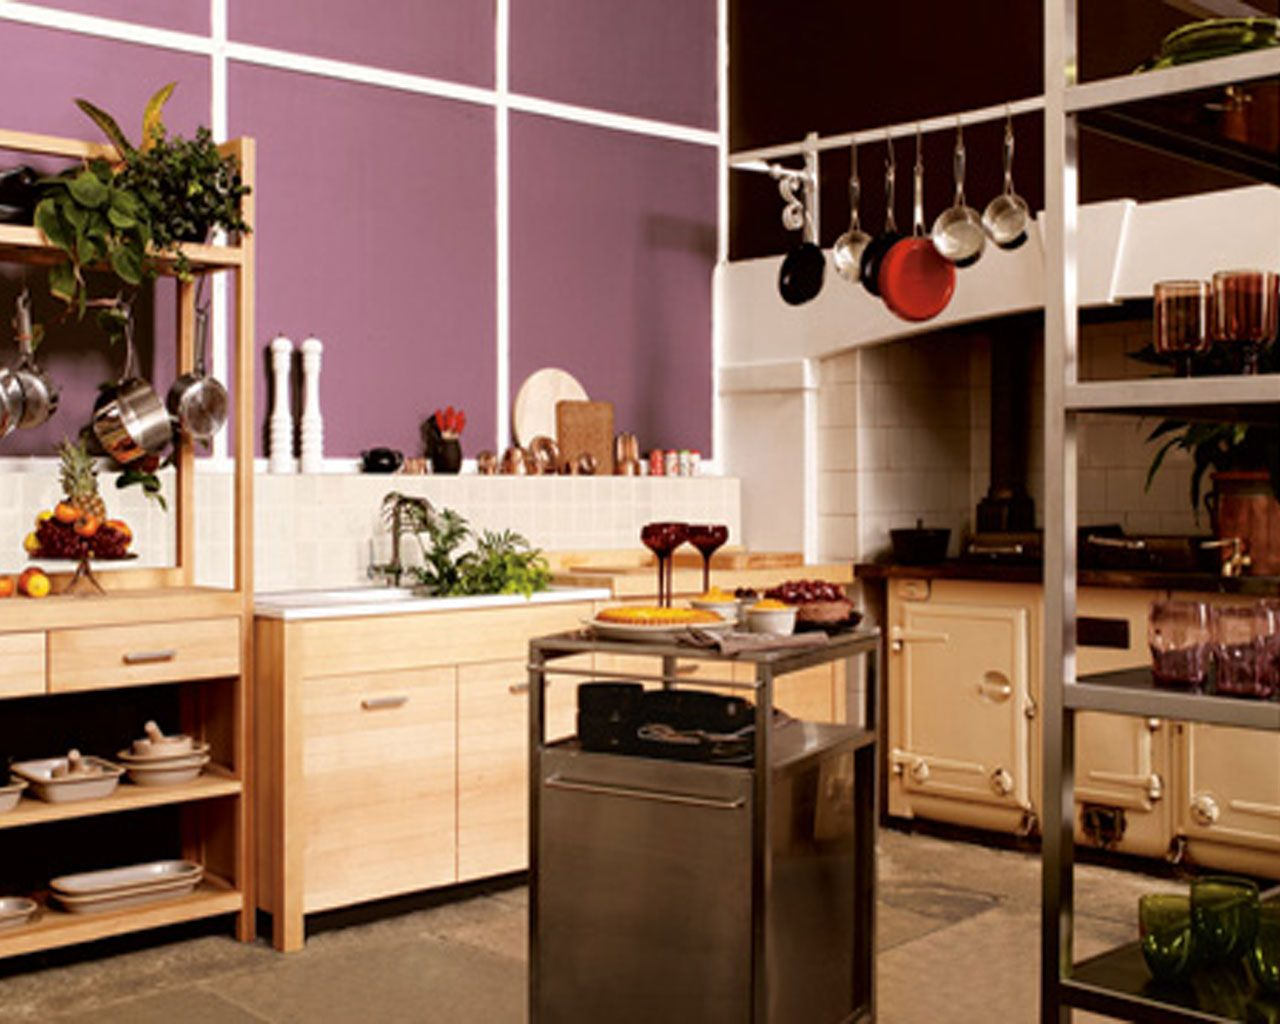 Best Kitchen Design Ideas 42 best kitchen design ideas with different styles and layouts Best Images About Purple Rooms On Pinterest Purple Dining Kitchen Design Ideas 2013